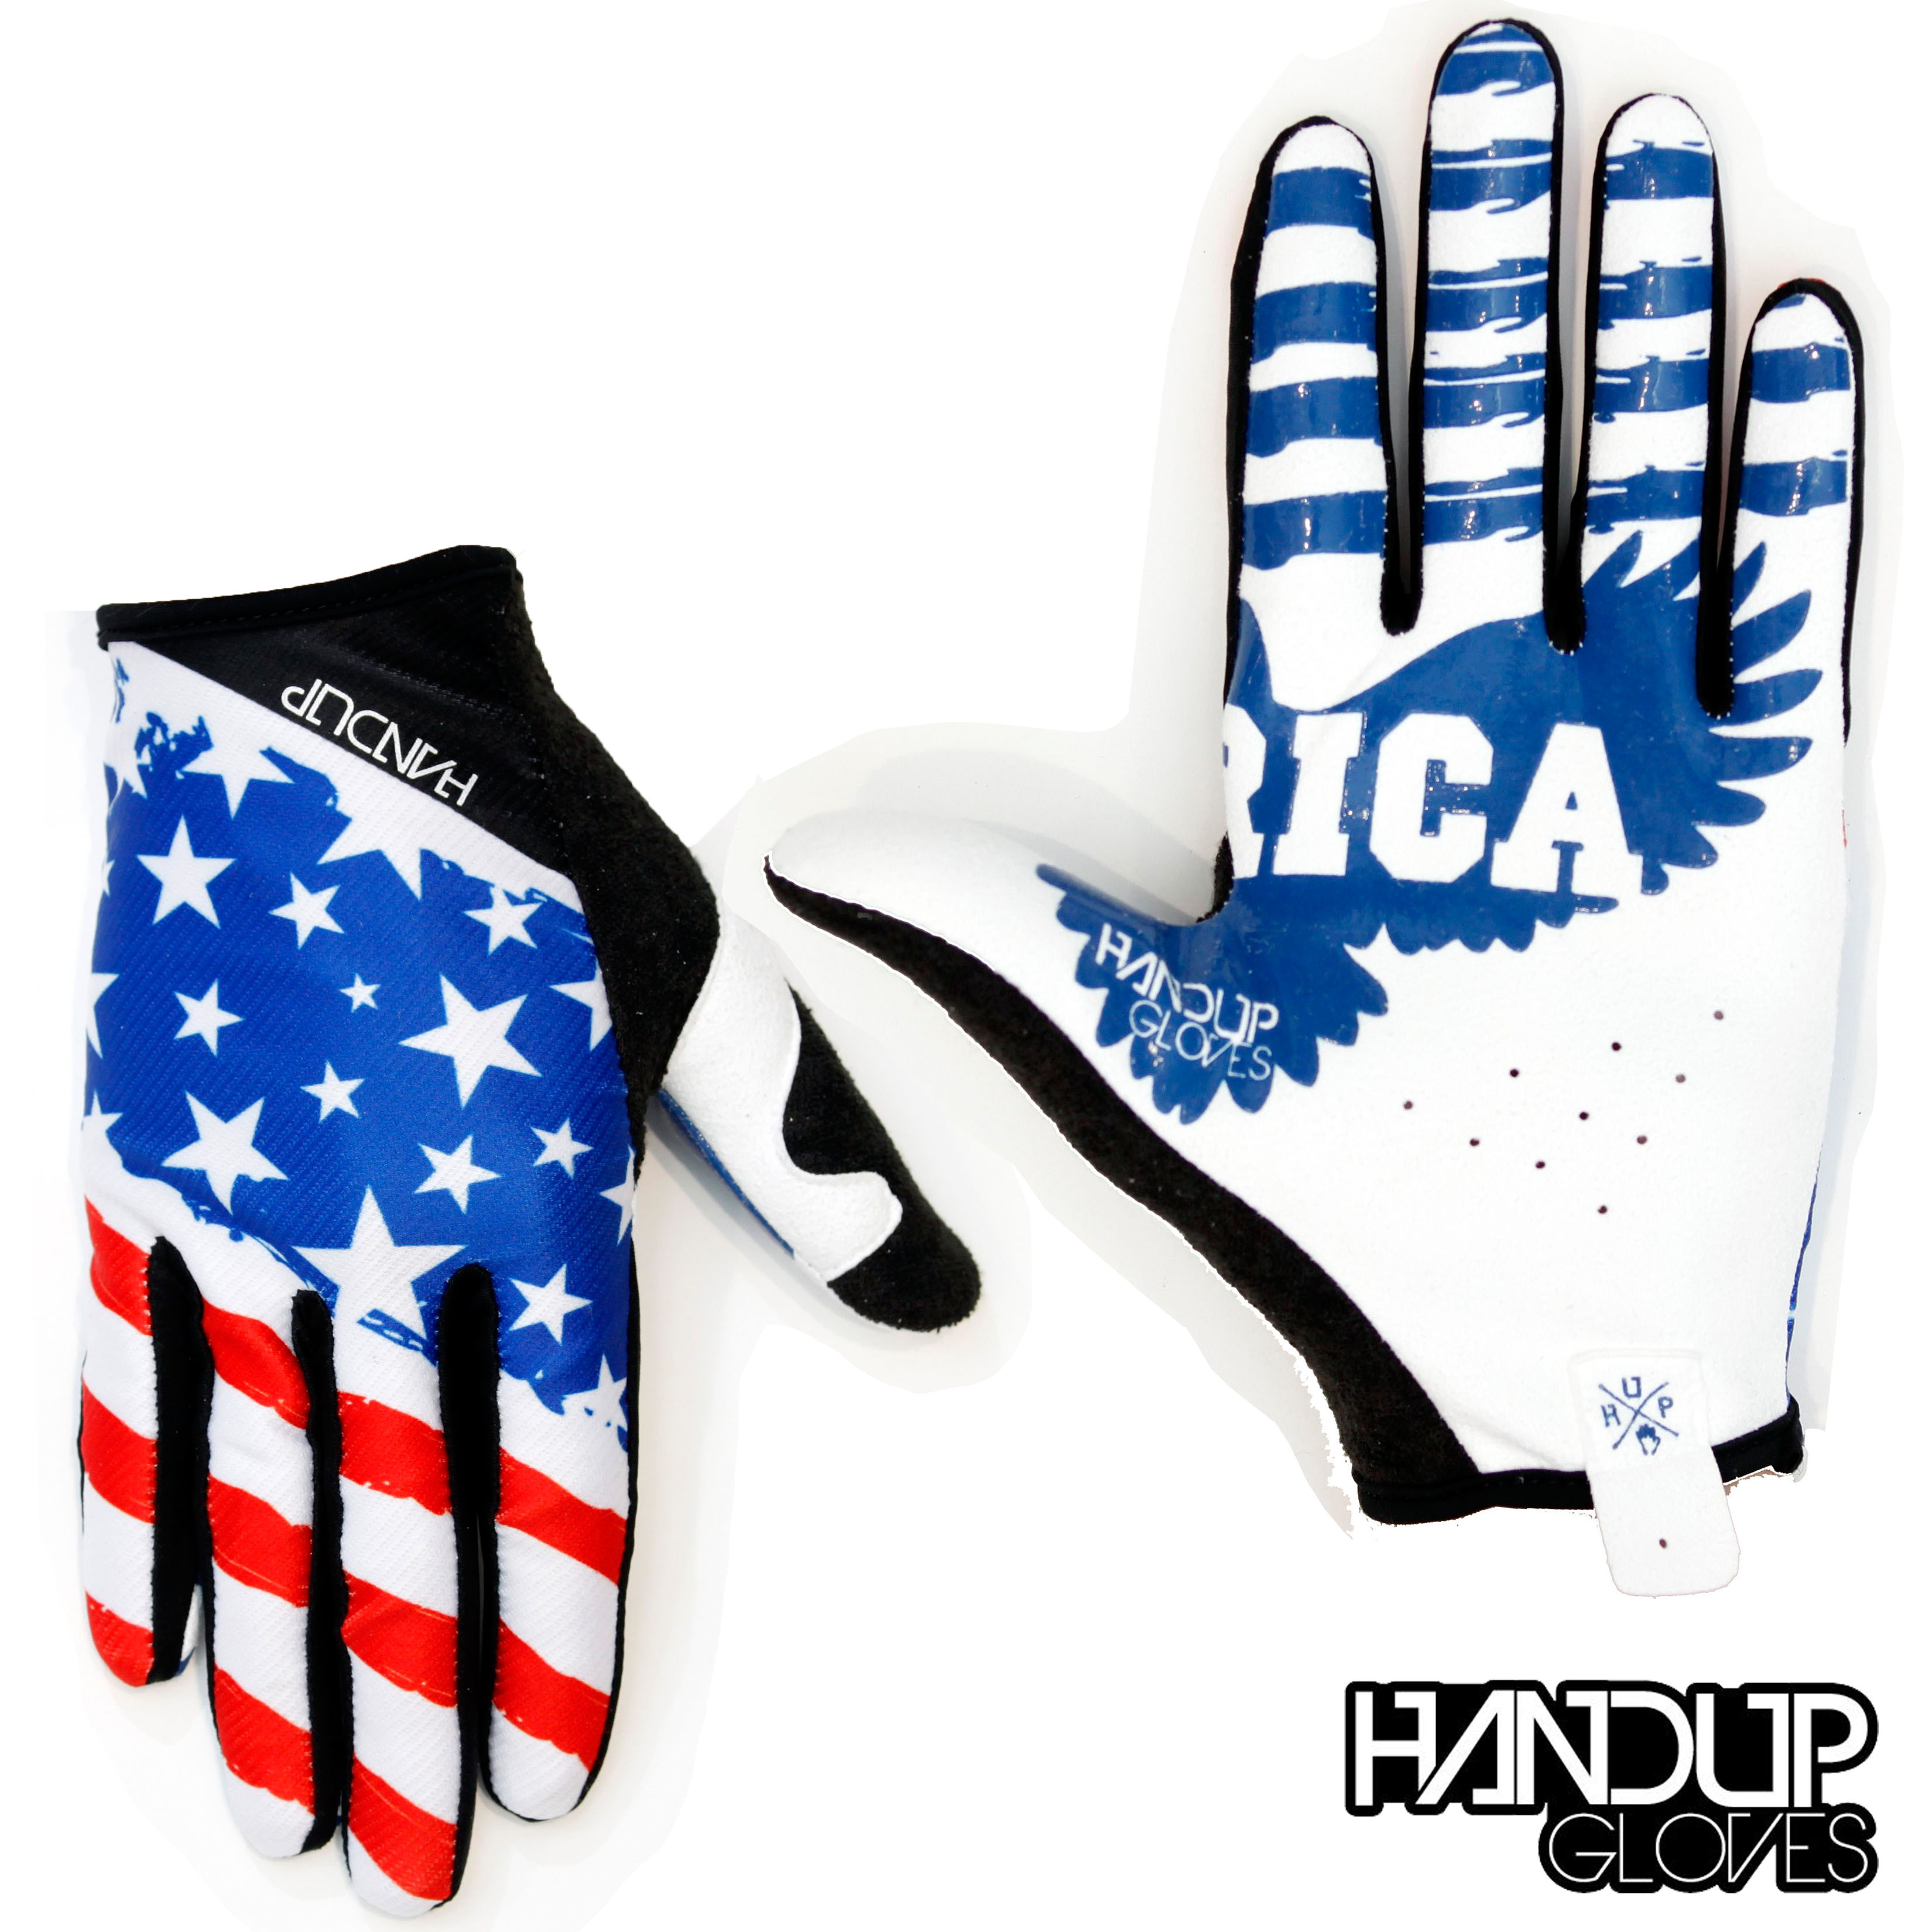 Torcano Industries exclusively distributing Handup Gloves   Bicycle